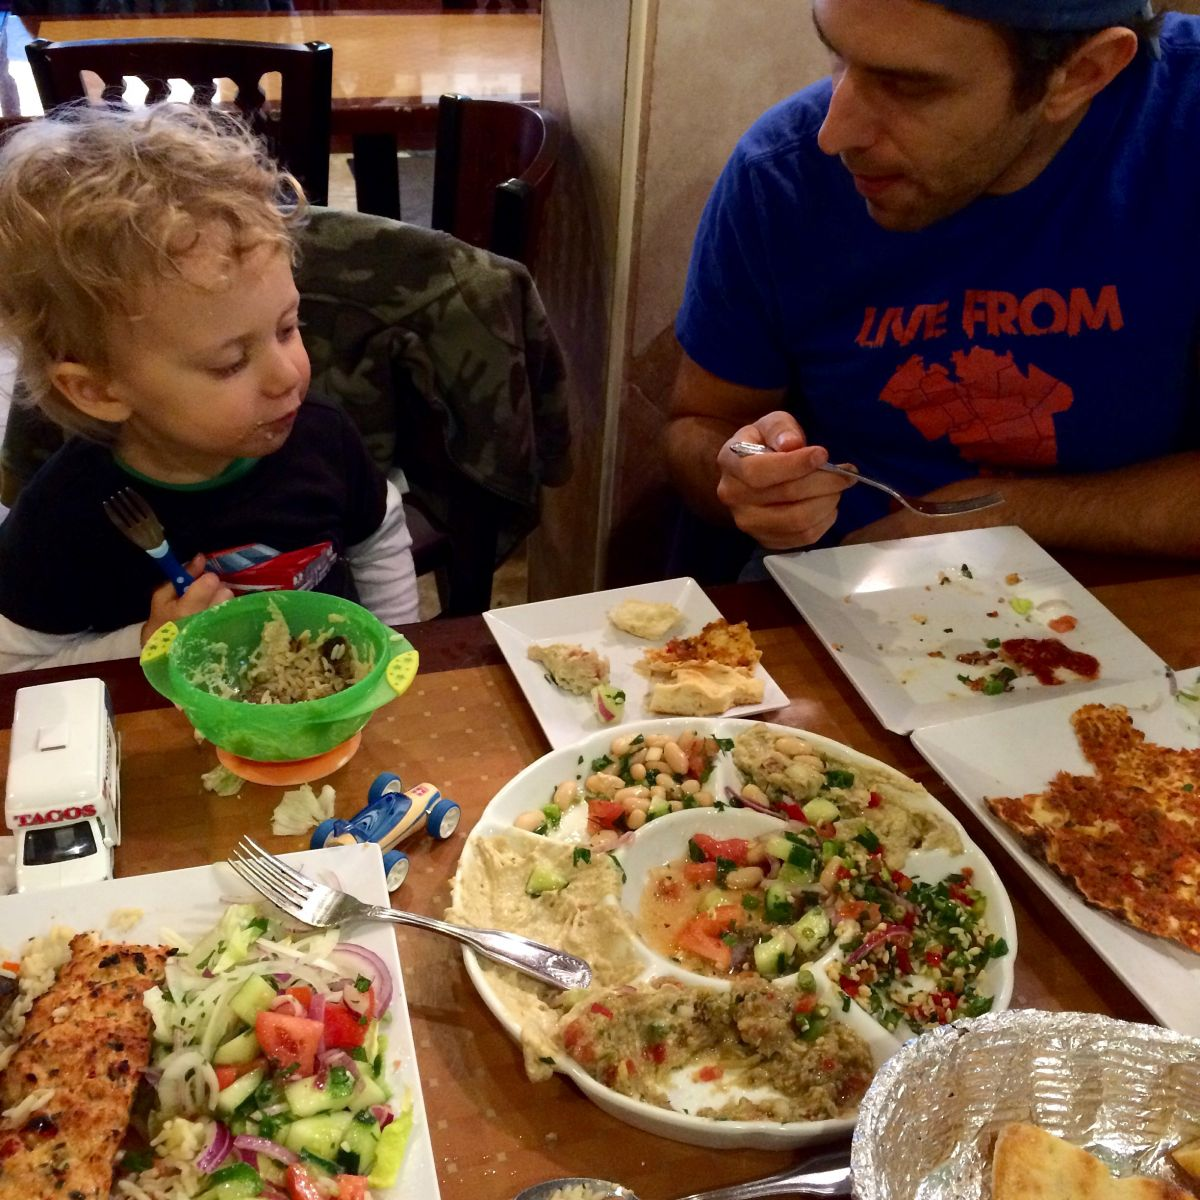 Toddler and dad eating Turkish food at a restaurant